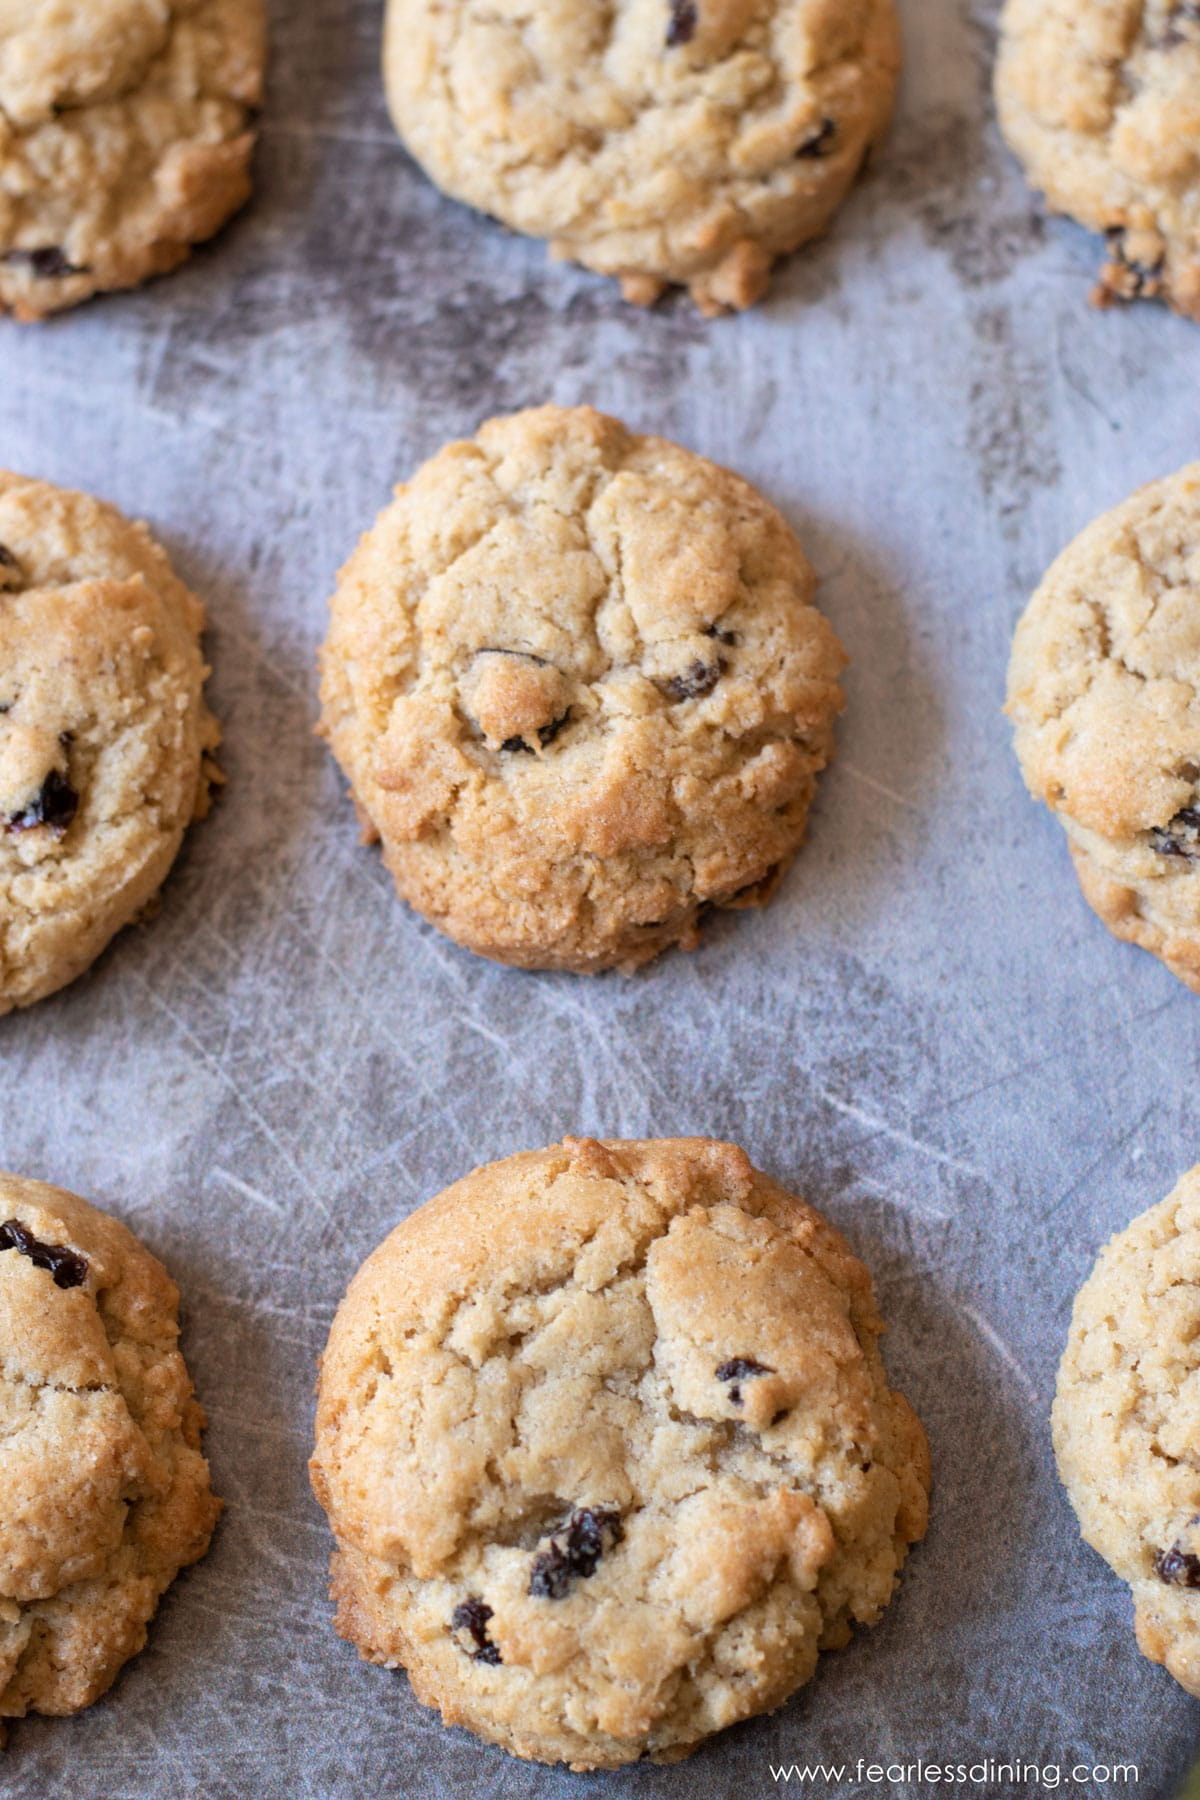 a cookie sheet with baked rum raisin cookies